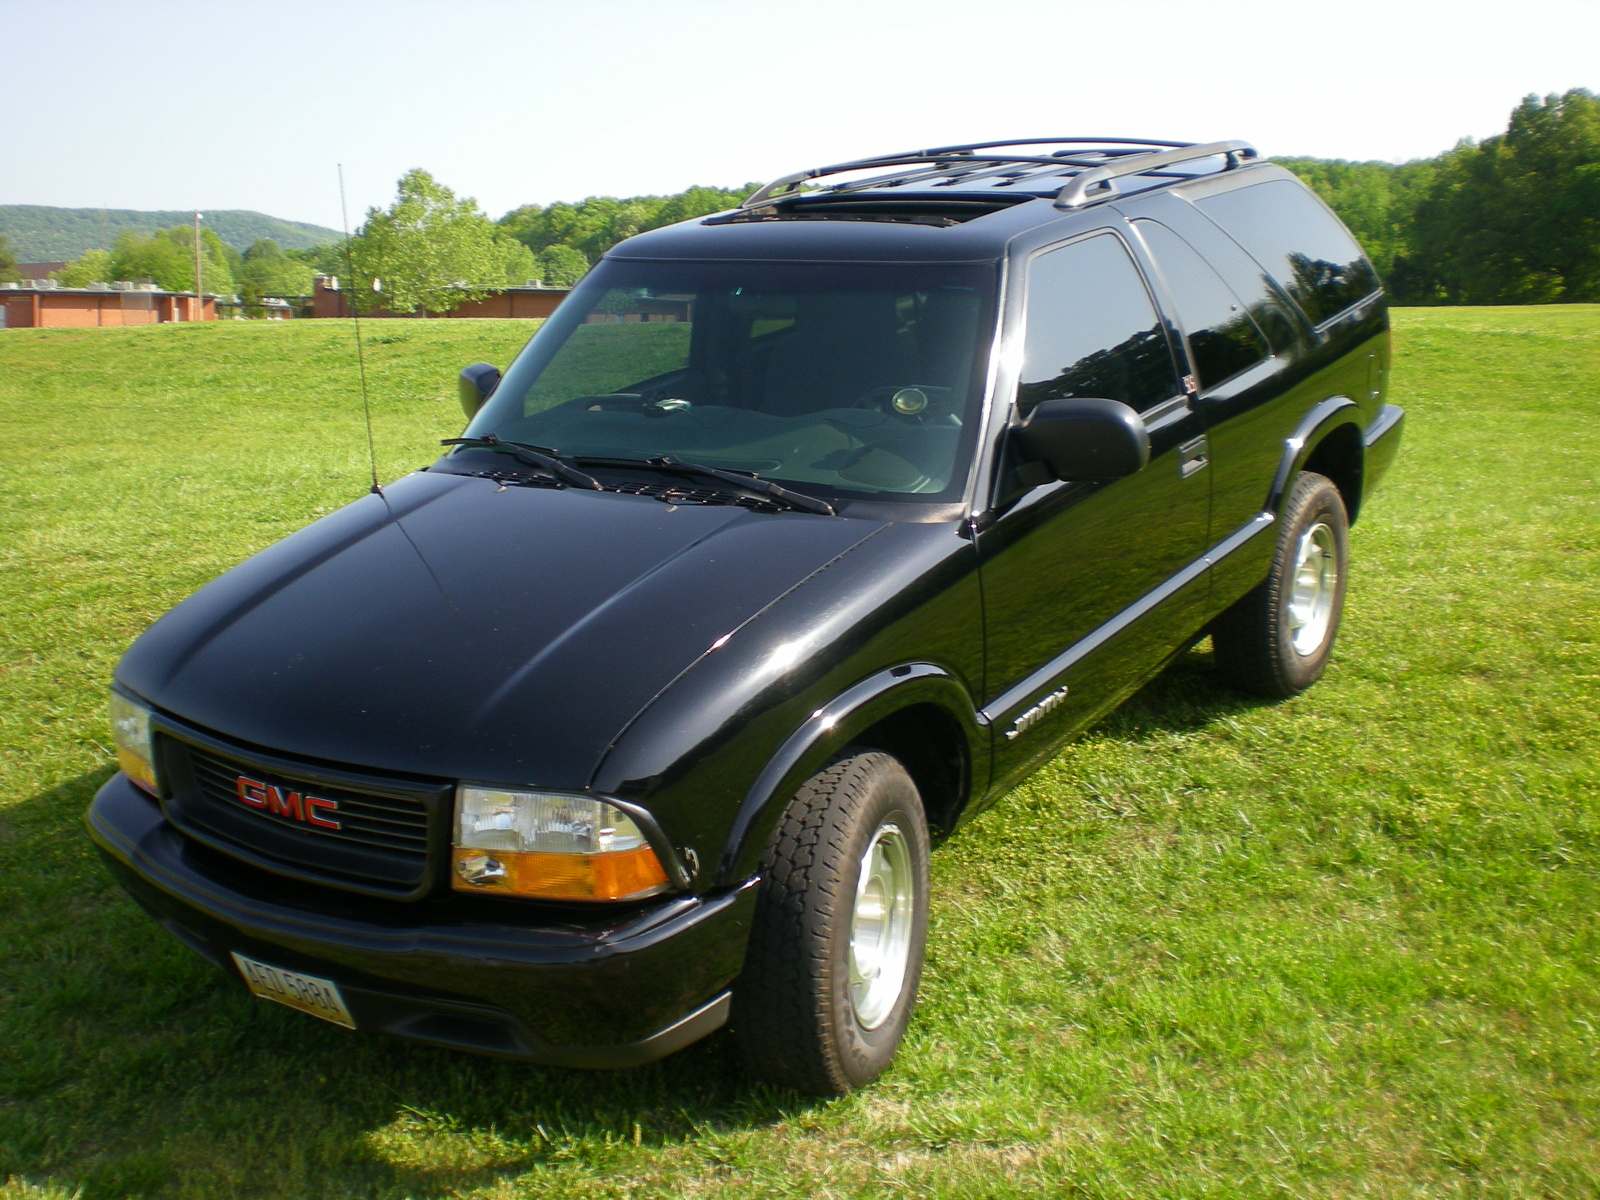 2001 GMC Jimmy 2 Dr SLS SUV picture